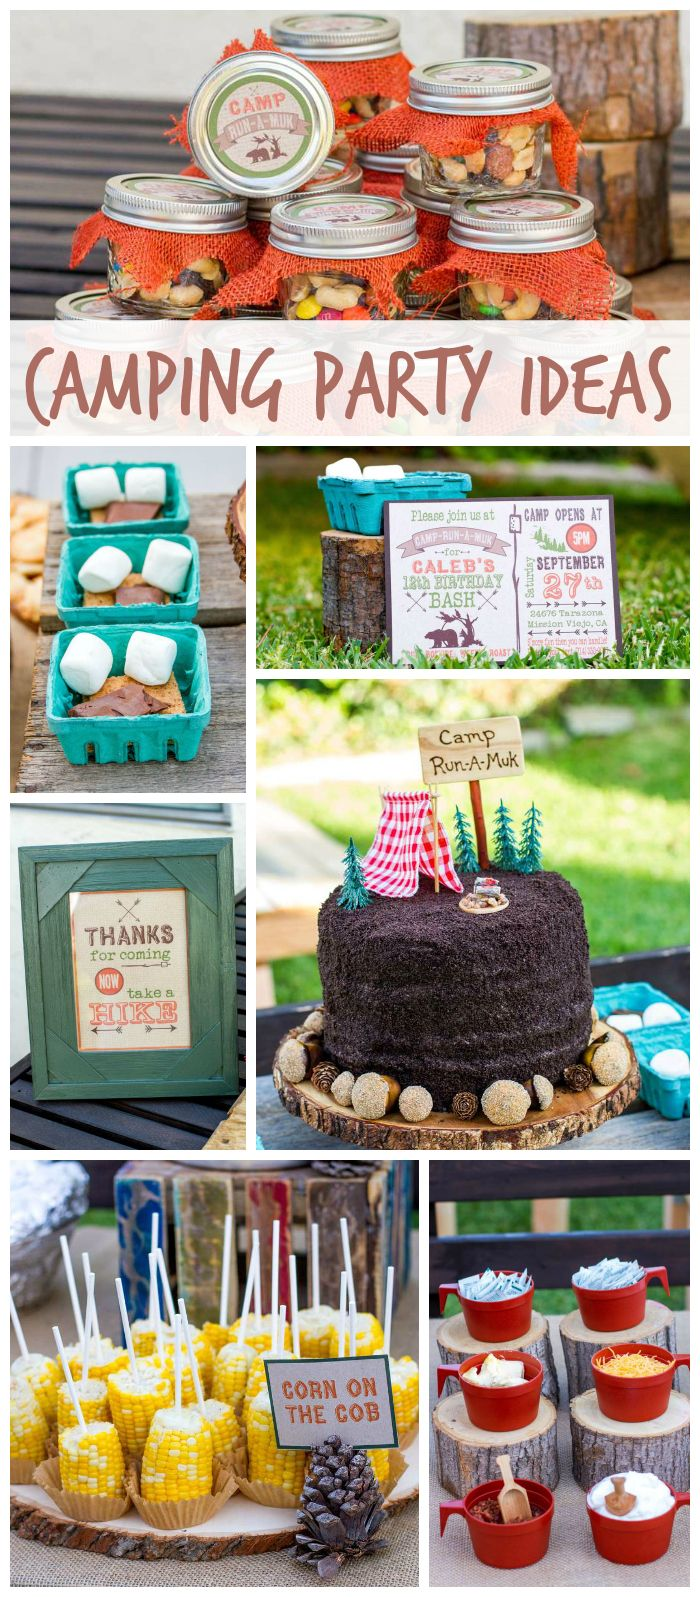 898 best images about Kids party ideas on Pinterest | Art party ...